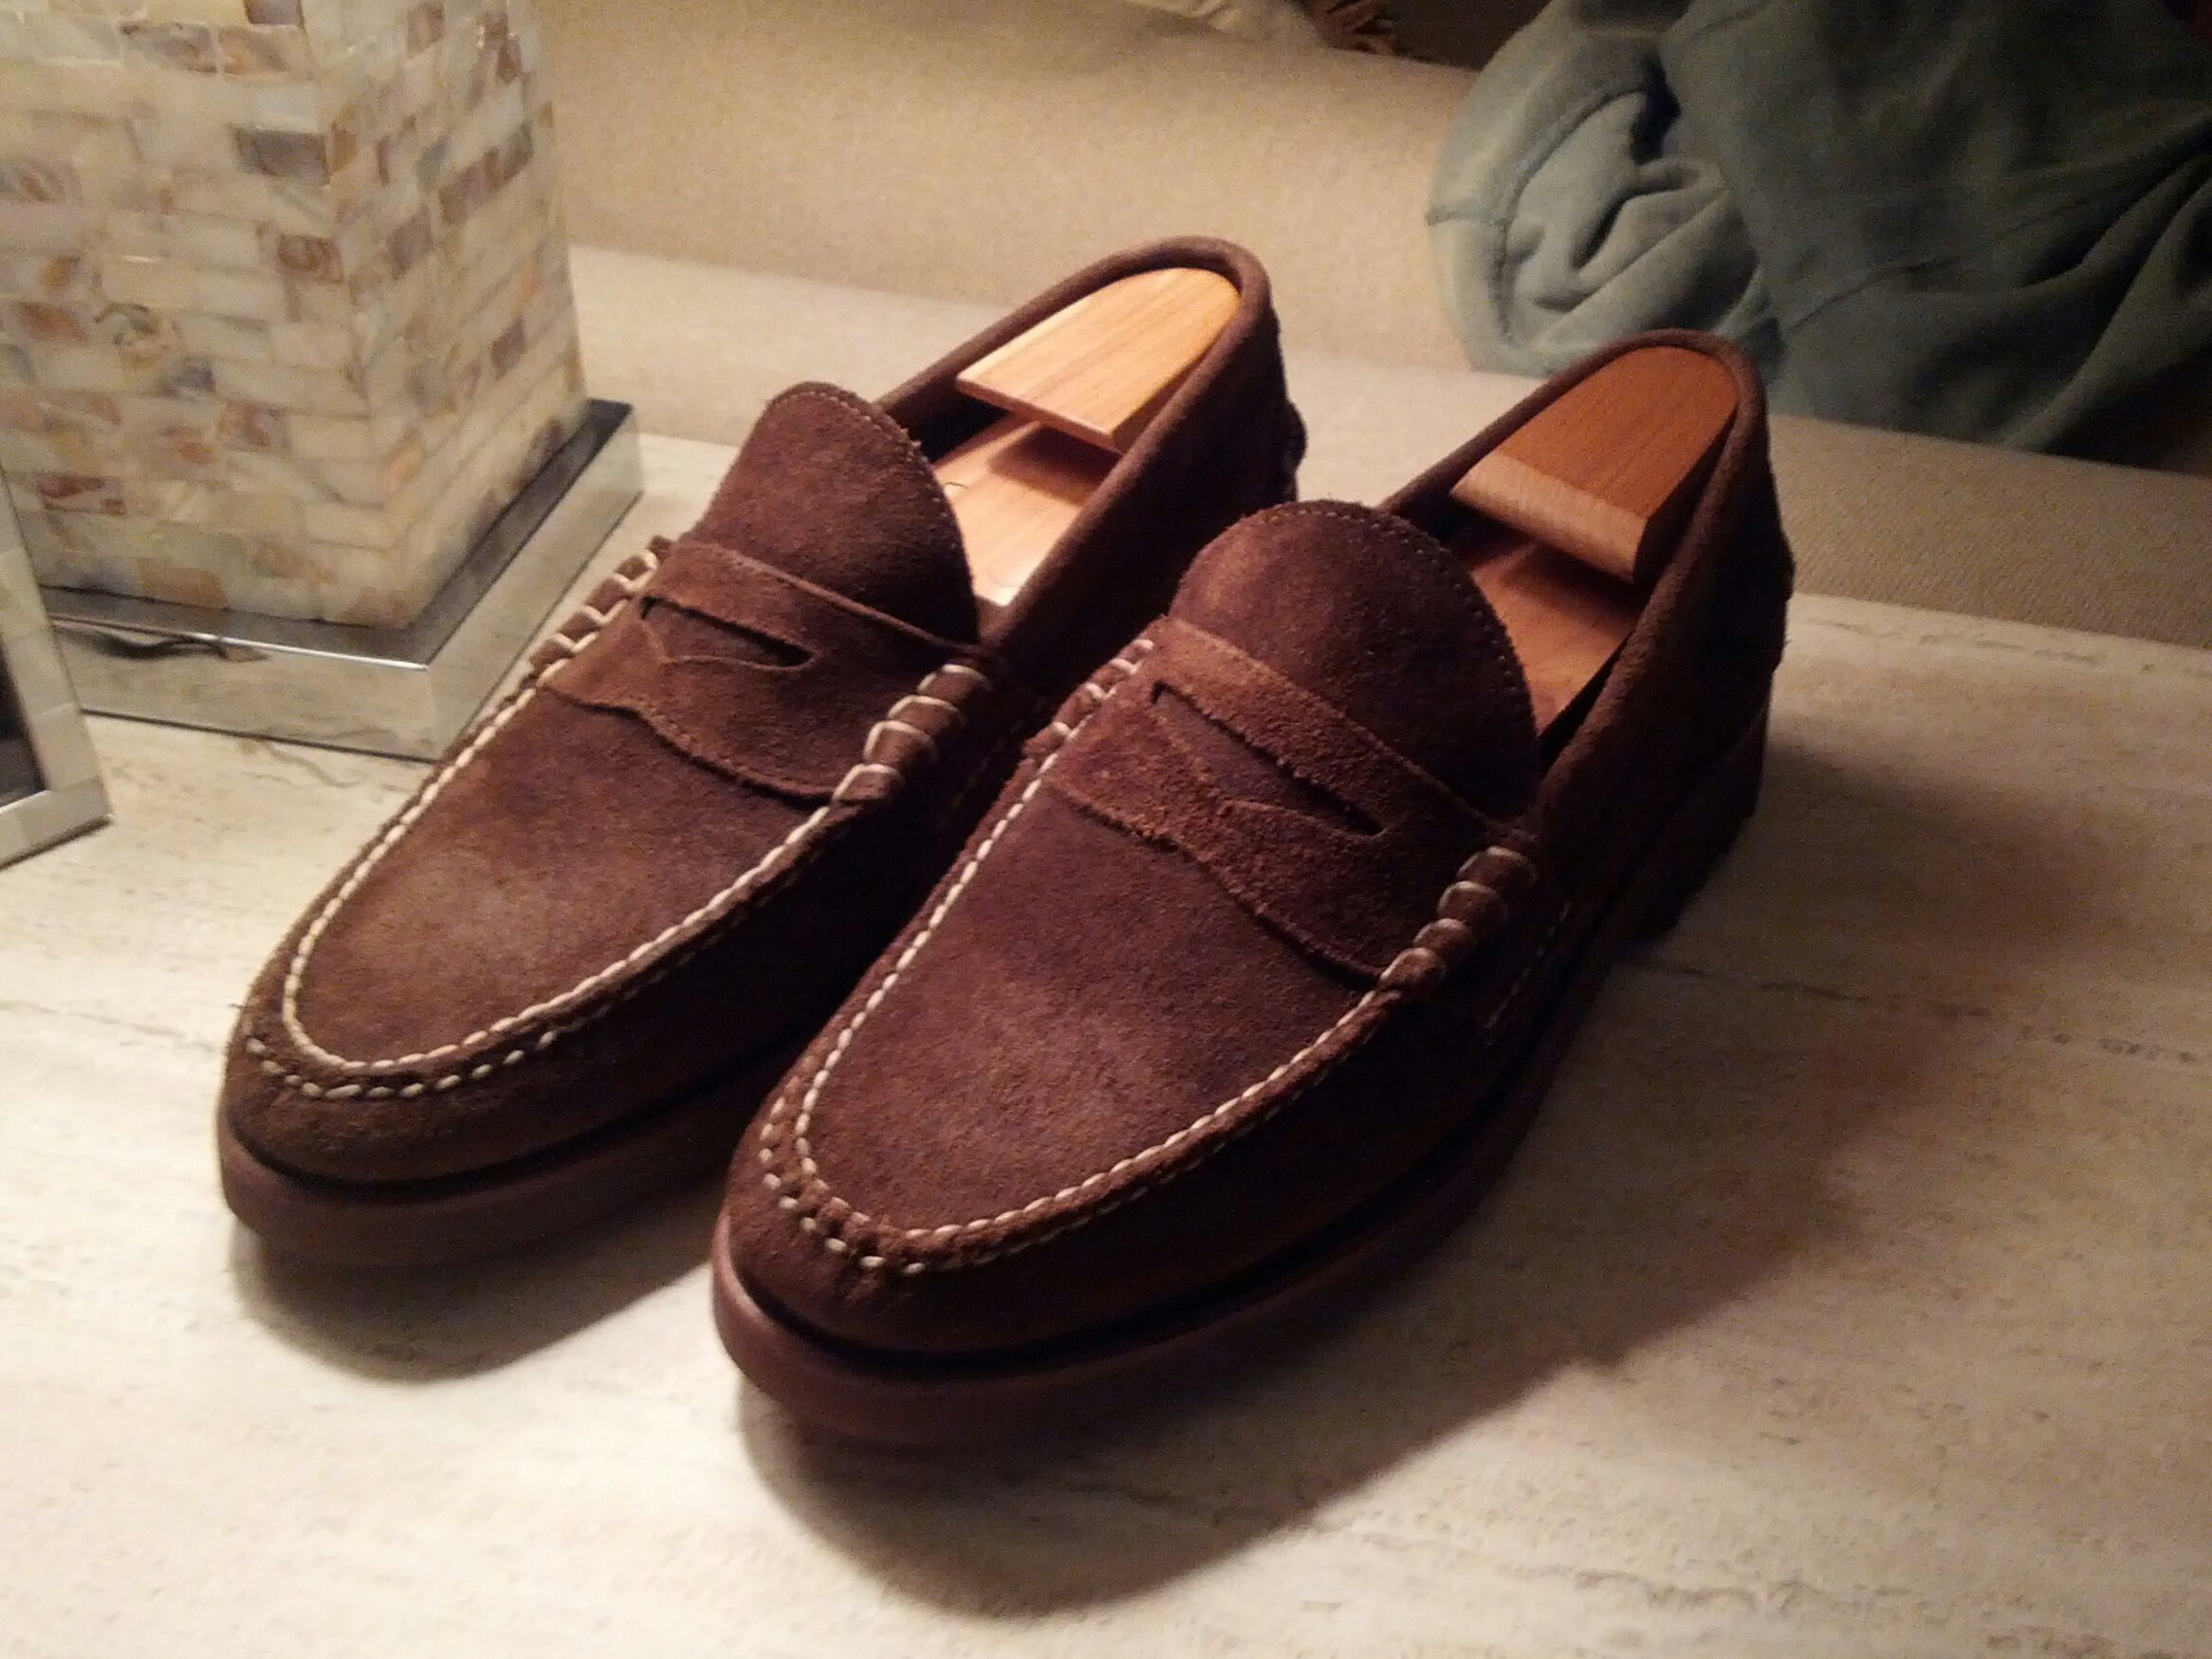 798b7a75ea1 New Rancourt   Co. Suede Beefroll Penny Loafers for RL Size 11D FREE ...